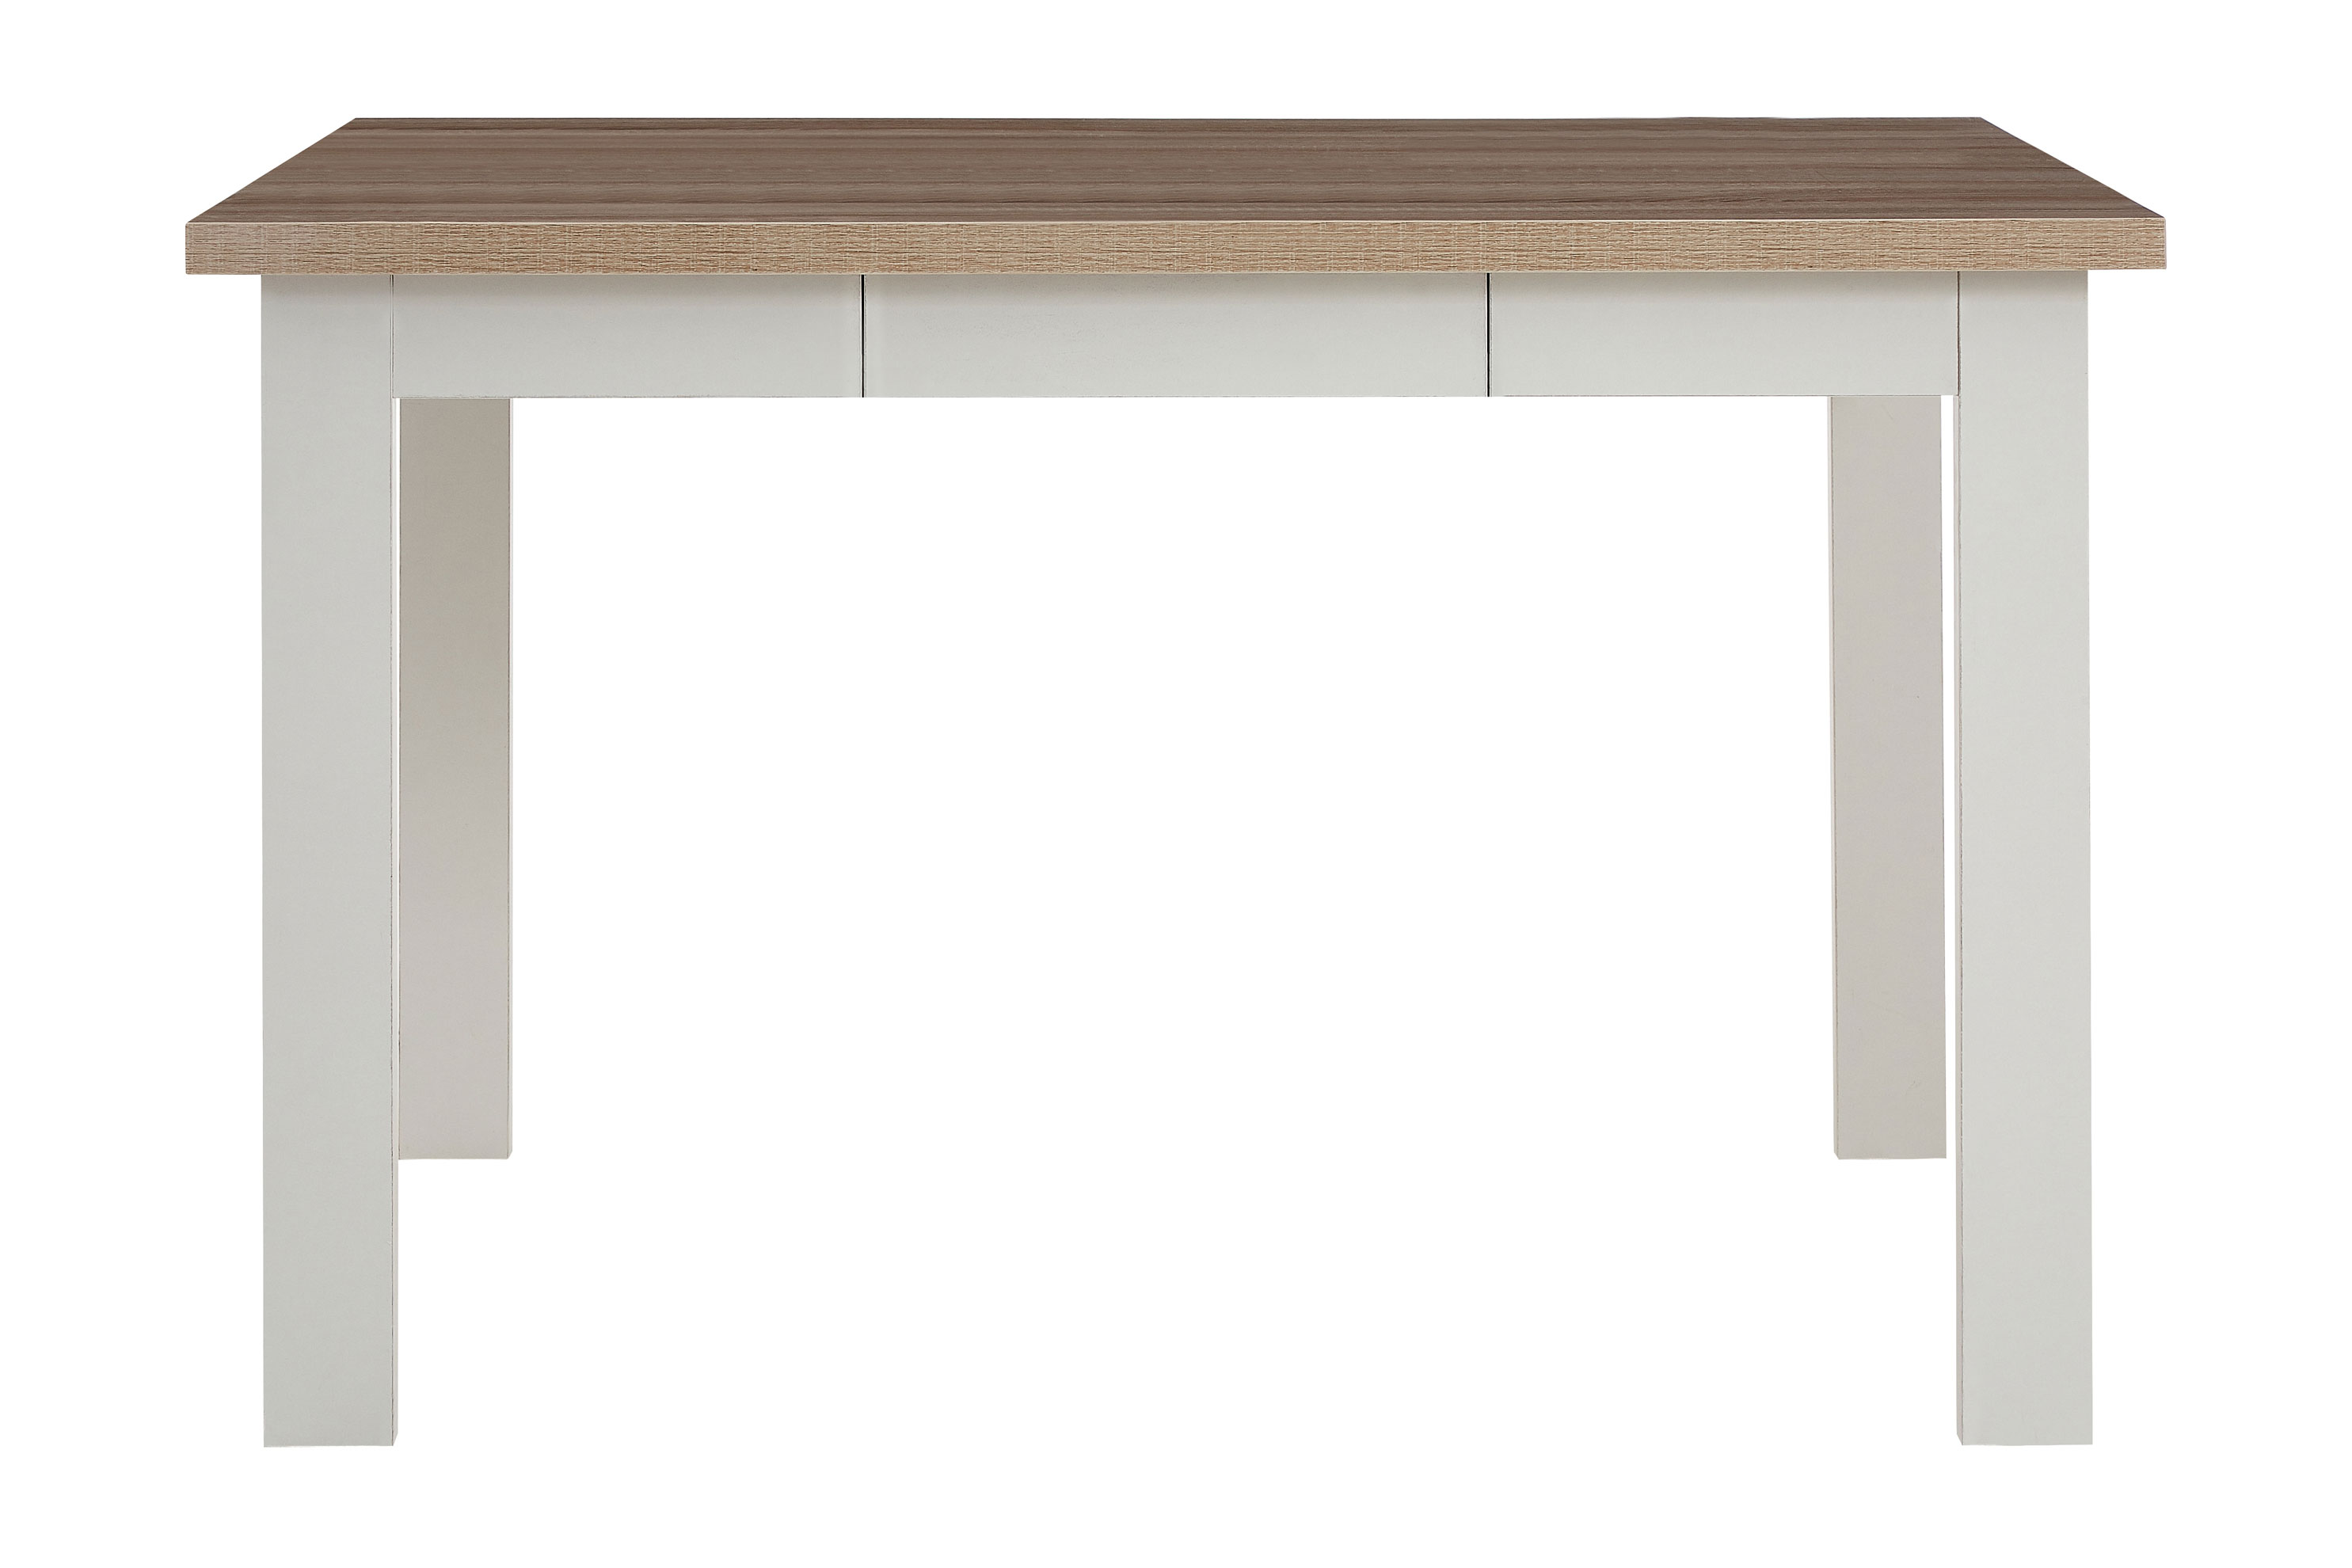 St ives large dining table traditional oak veneer white finish space 6 people ebay - Oak veneer dining table ...